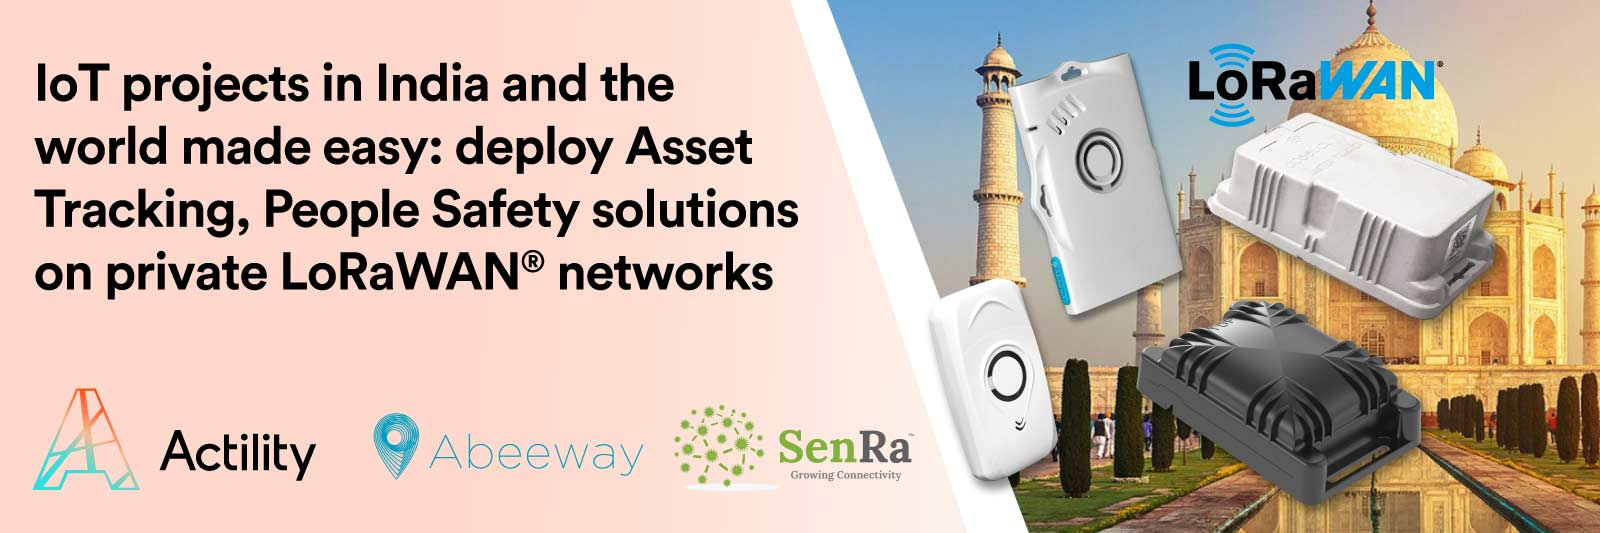 SenRa and Actility are working together to accelerate LoRaWan adoption globally.